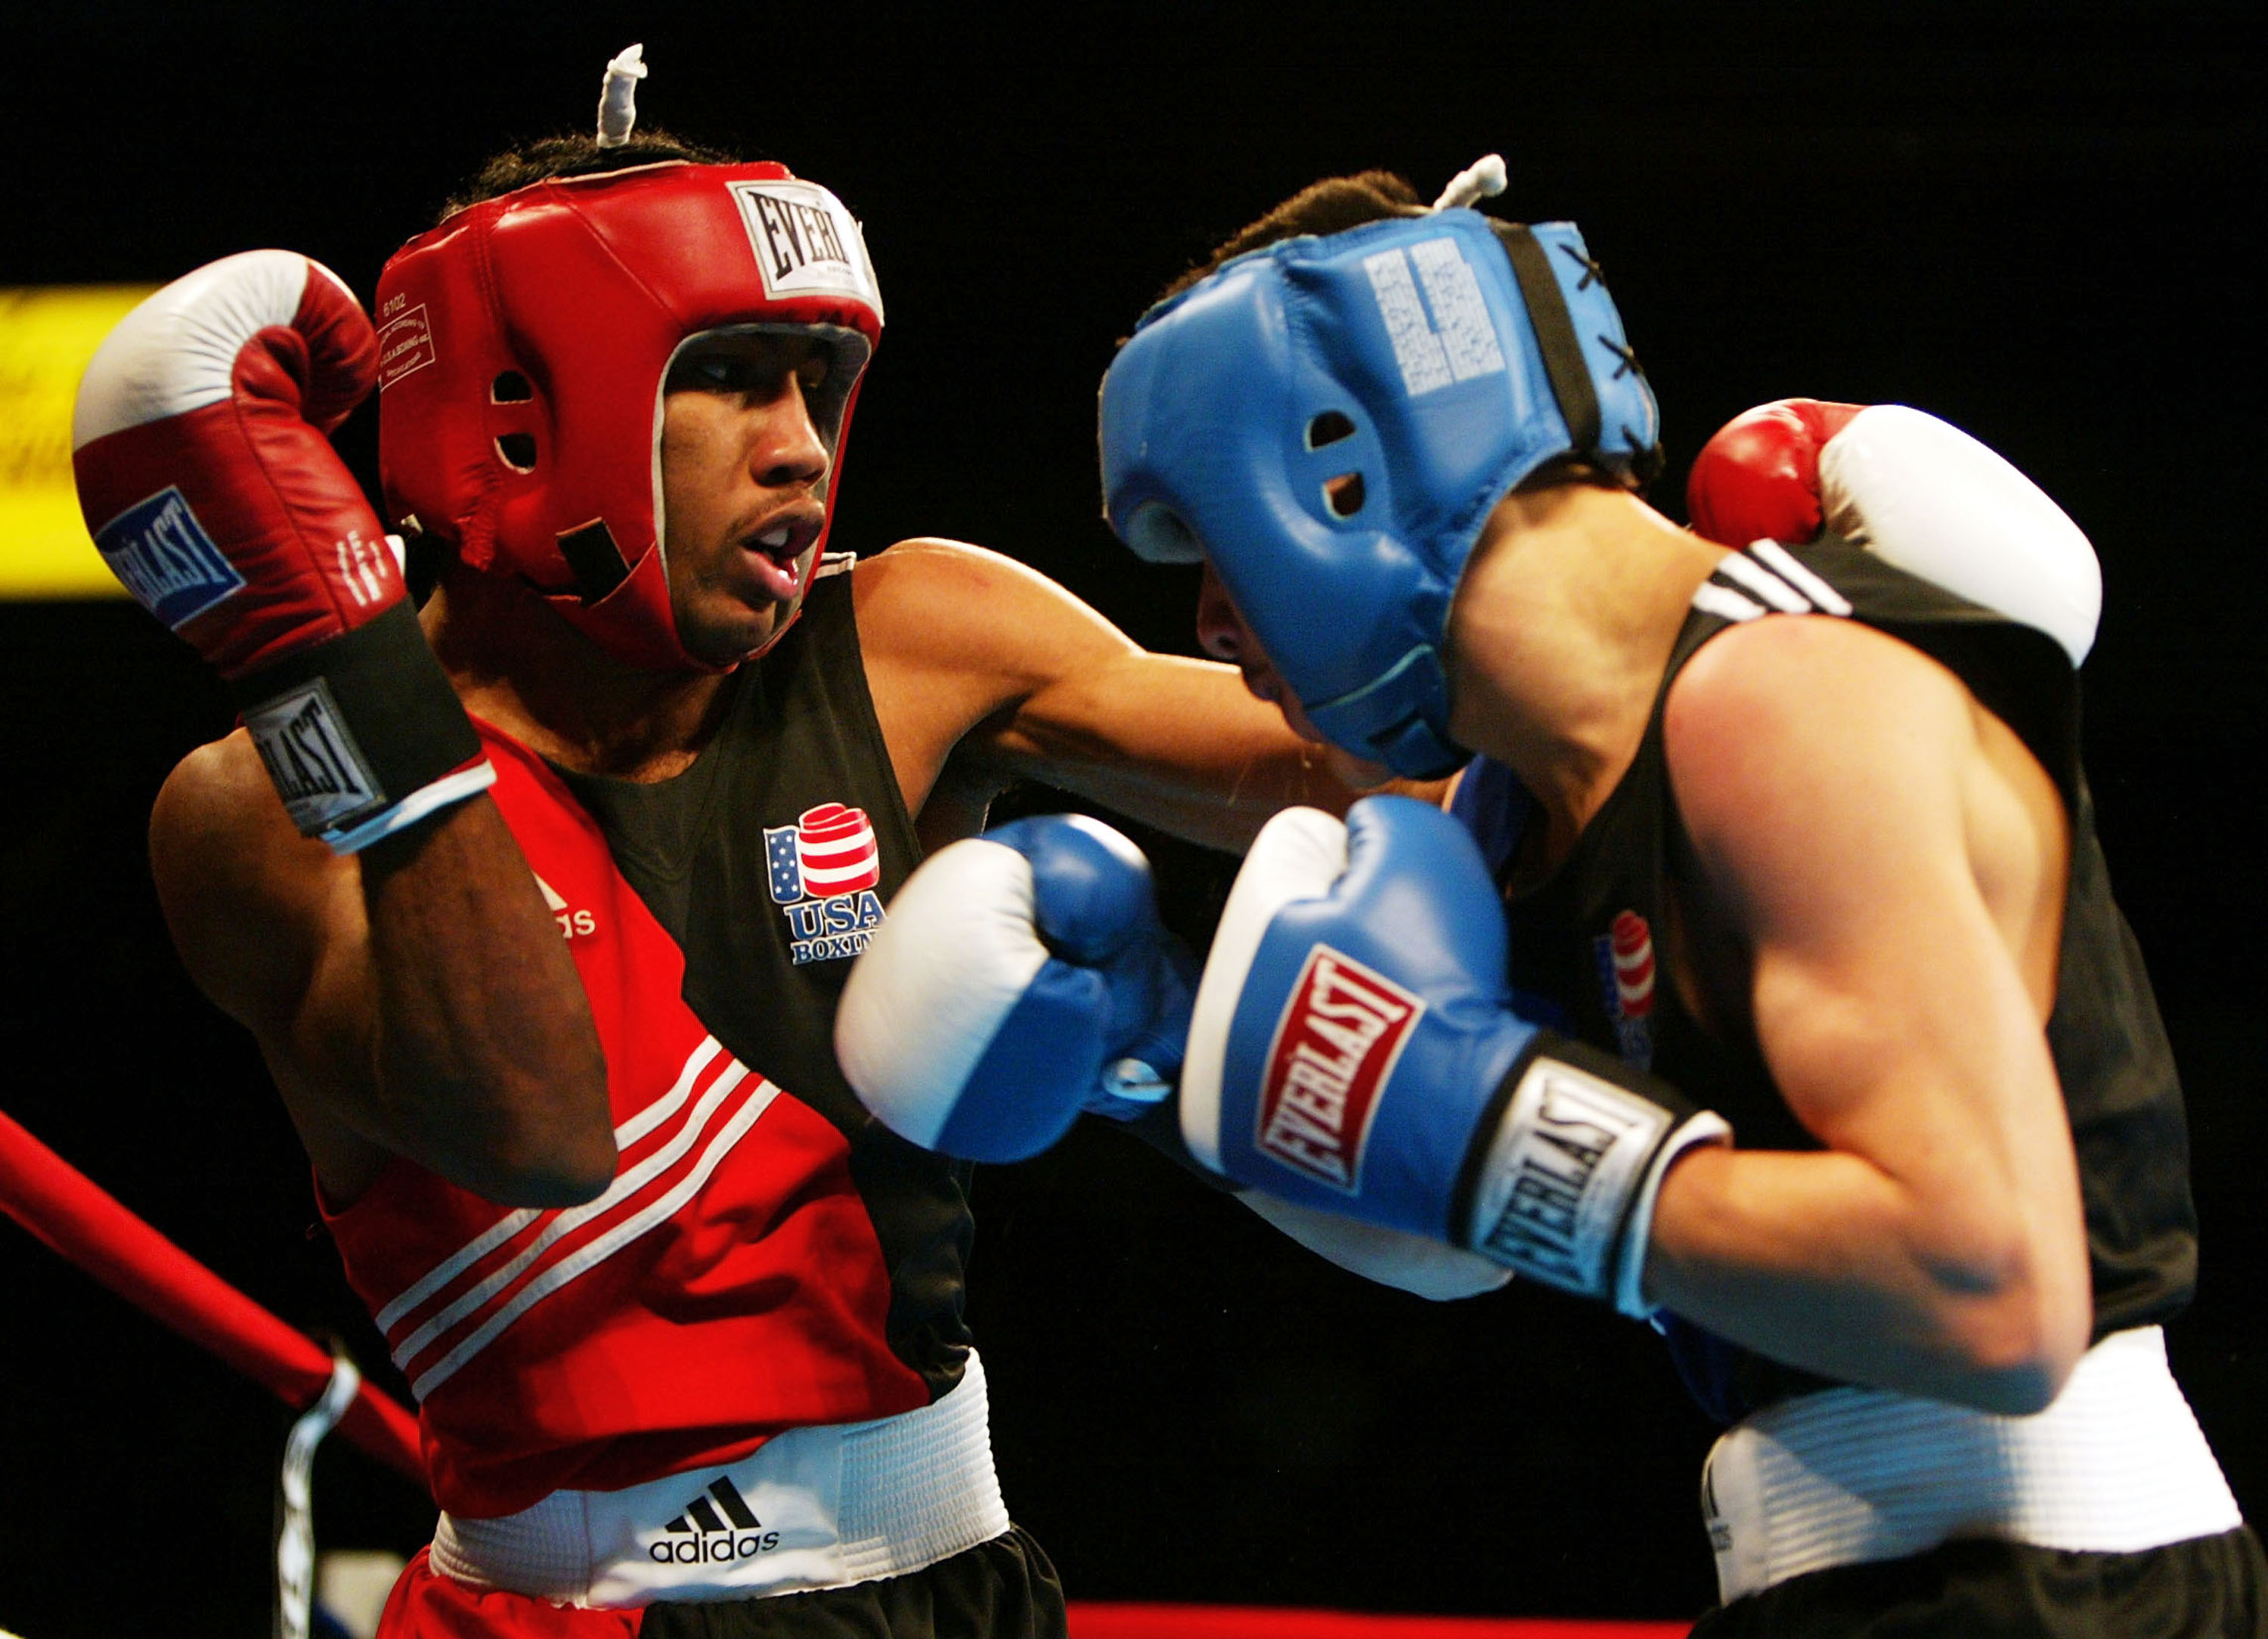 CLEVELAND, OH - FEBRUARY 27:  Mickey Bey Jr. of Cleveland, Ohio (L) lands a punch during his featherweight (125lbs) match against Brandon Rios of Garden City, Kansas during the 2004 Olympic Box-Offs at the Cleveland Convocation Center February 27, 2004 in